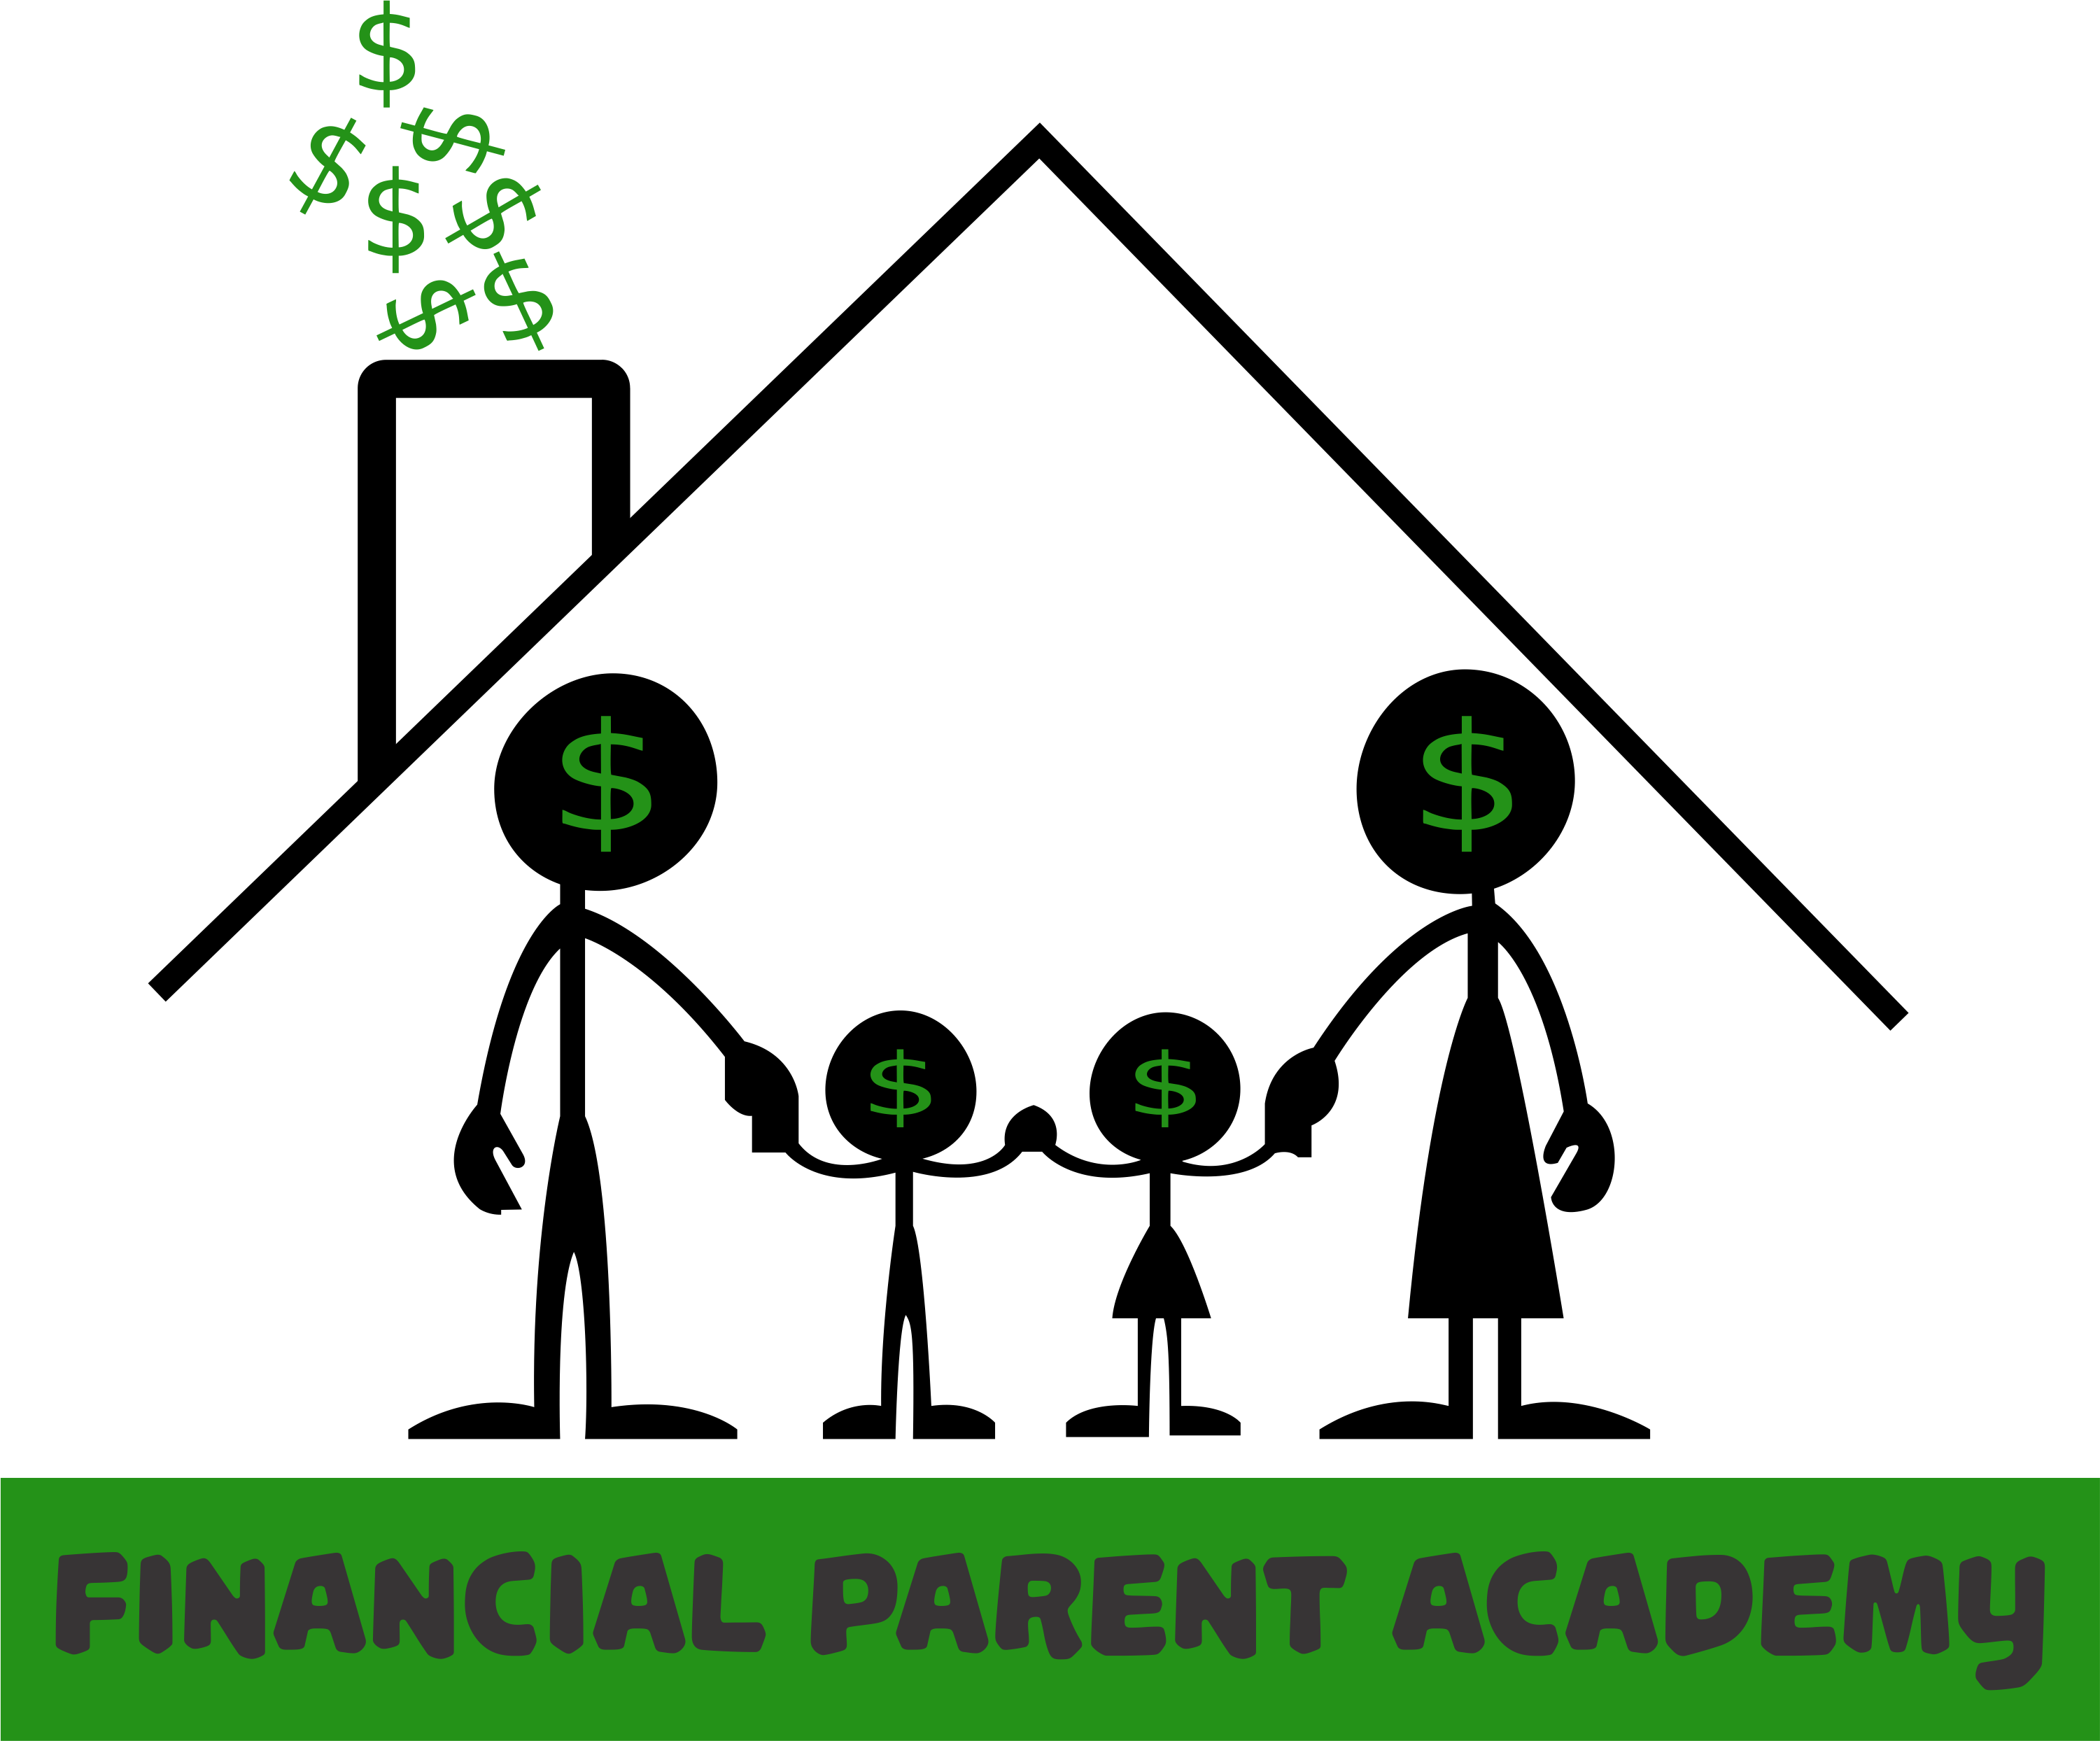 Financial Parent Academy